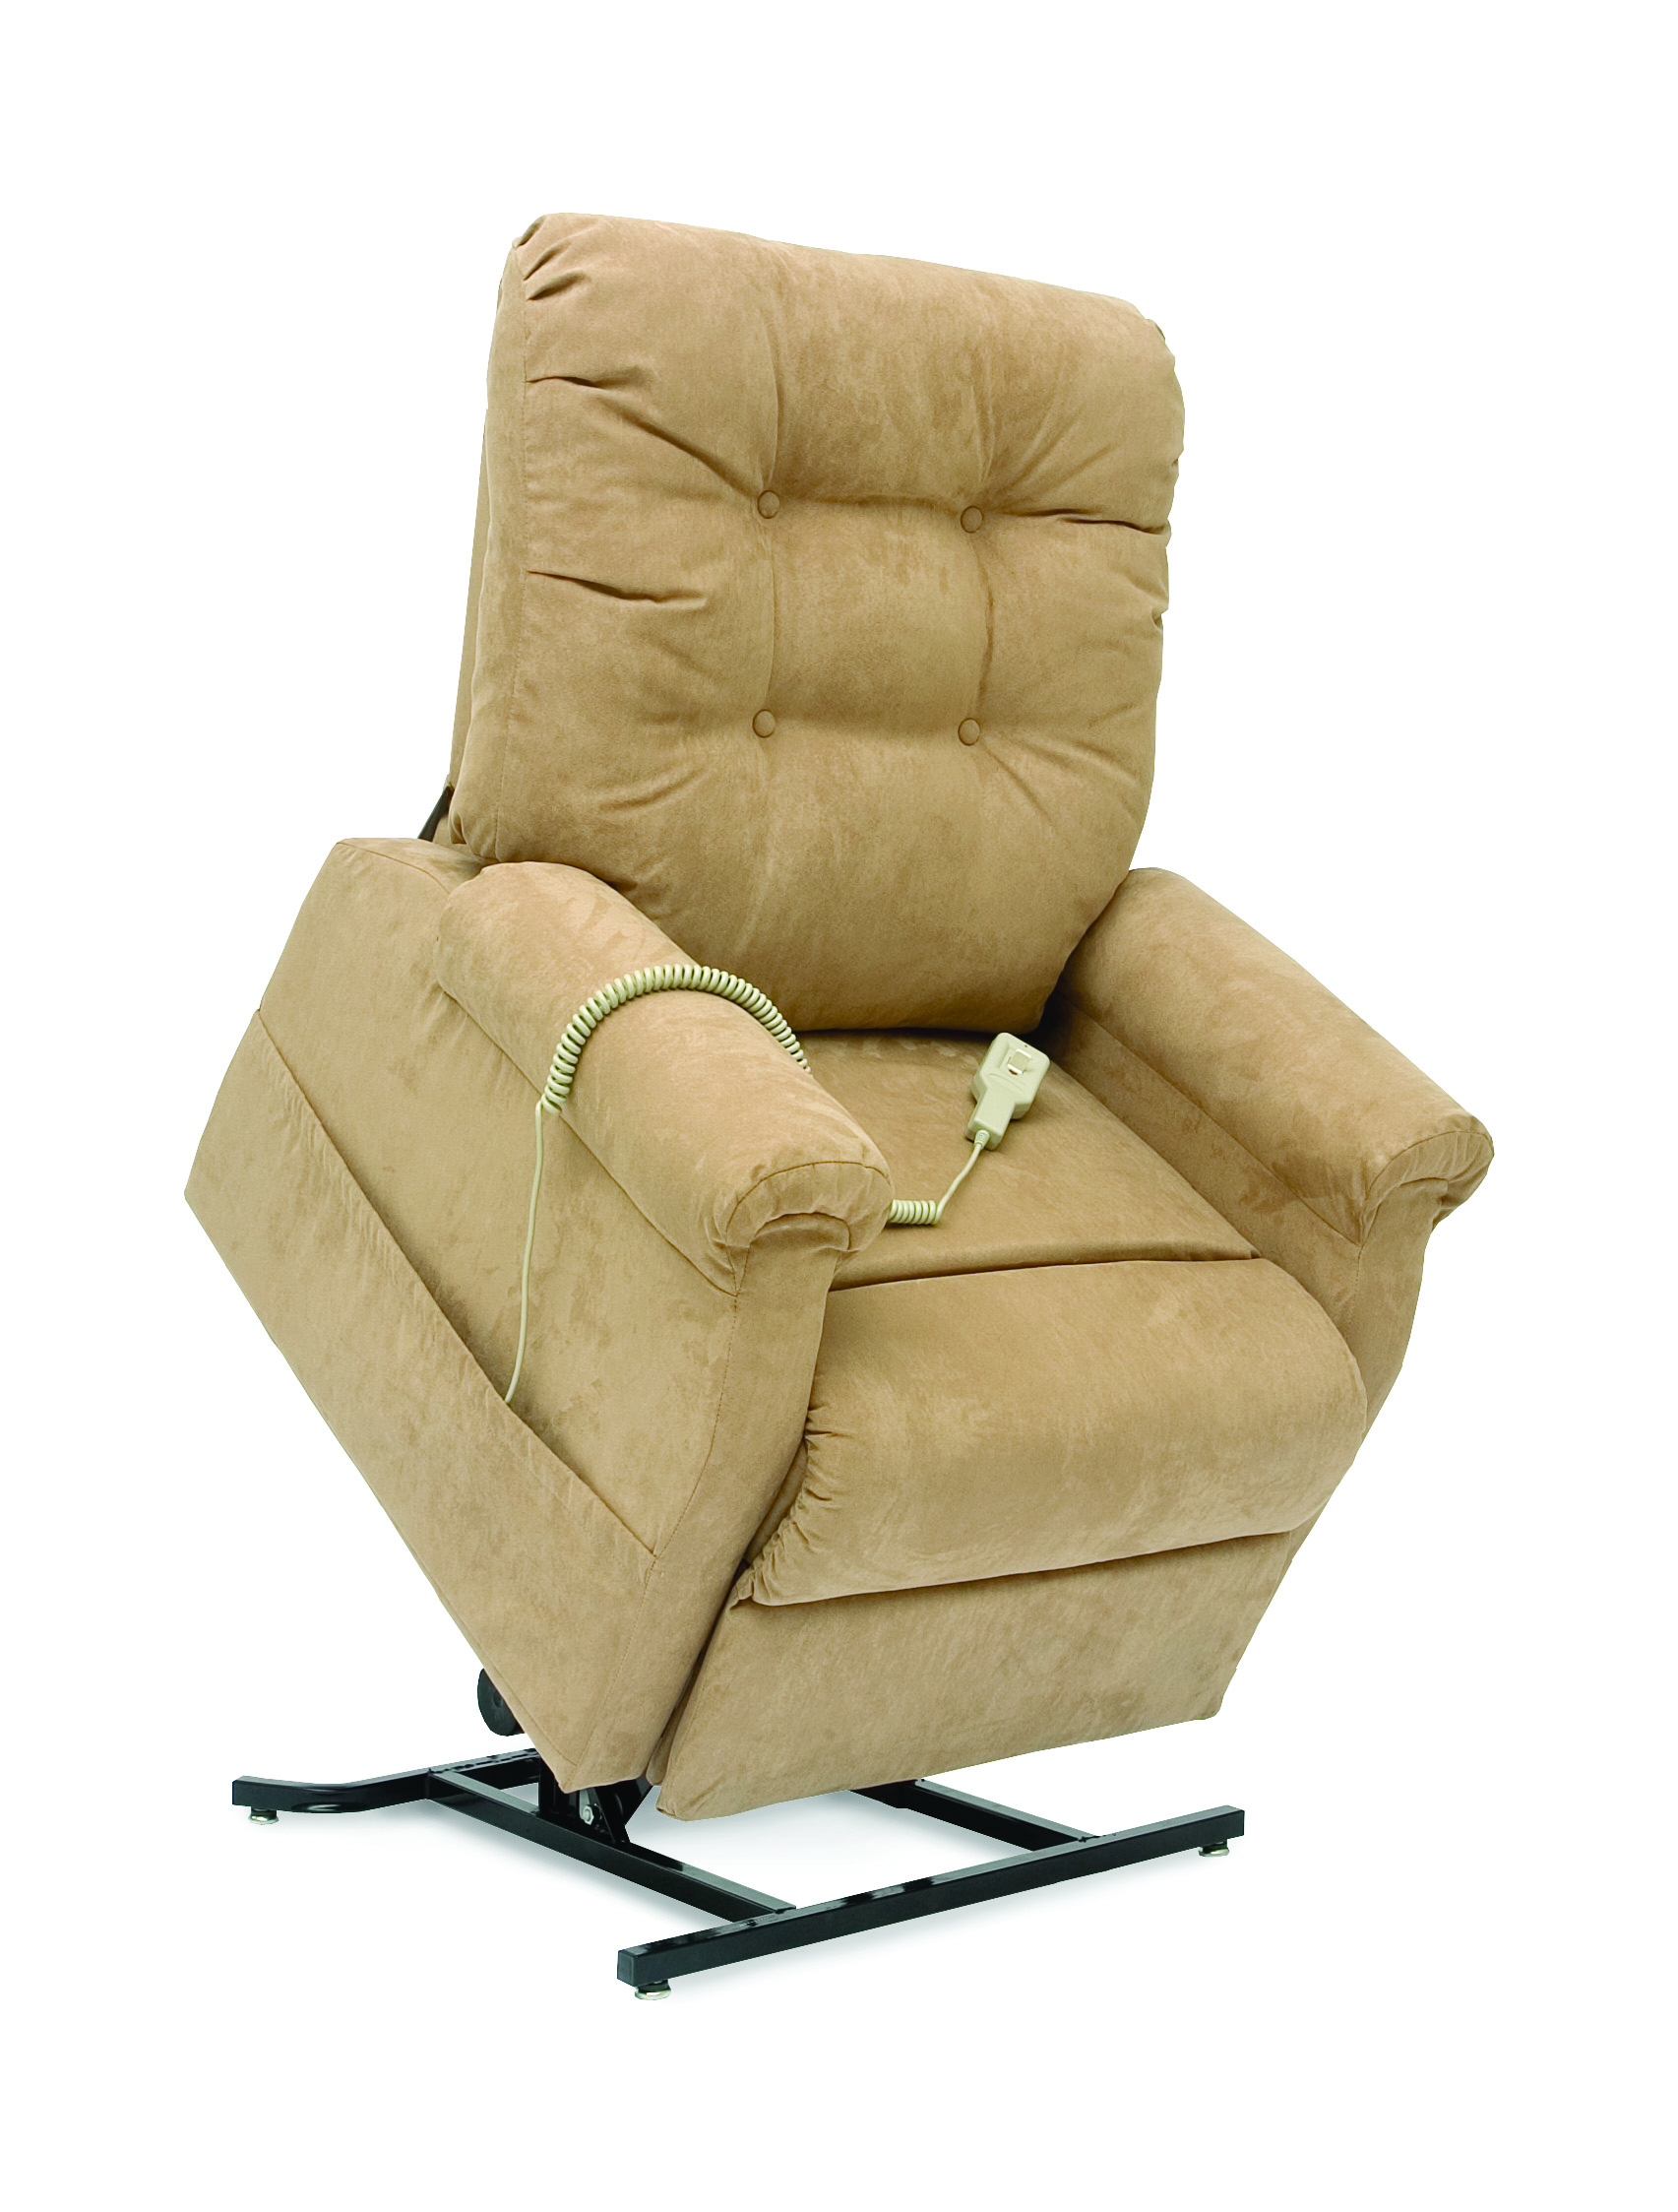 Fauteuil Roulant Manuel Weely Nov Medimad Medimad